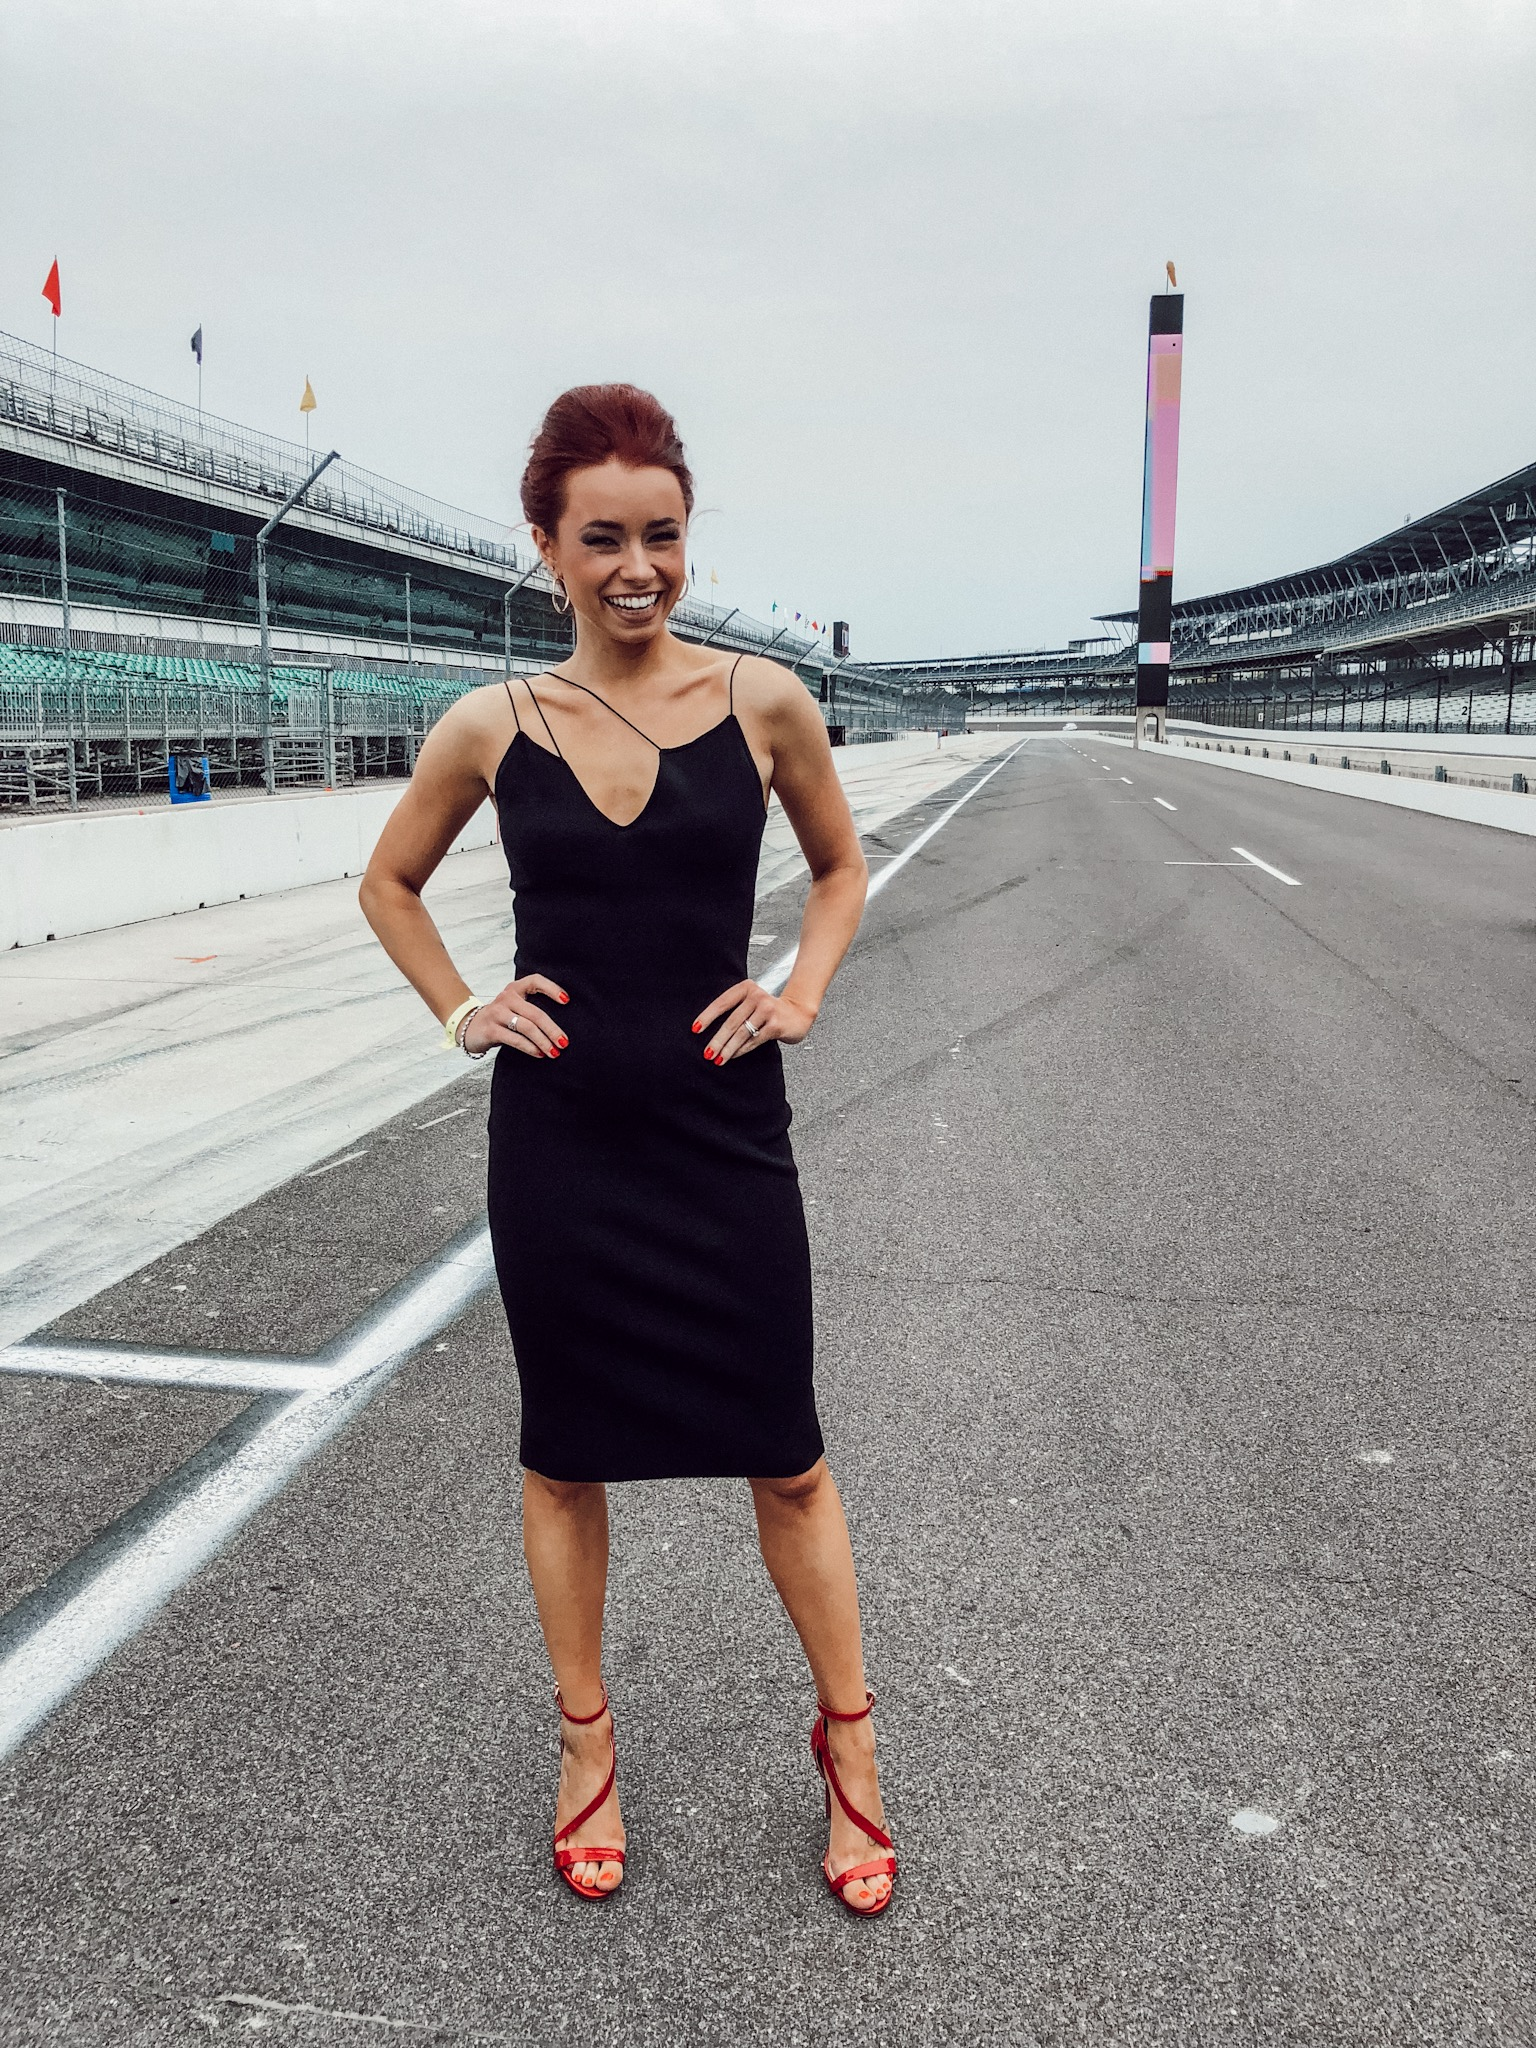 Rev Indy Event Recap by popular Indianapolis fashion blogger, Trendy in Indy